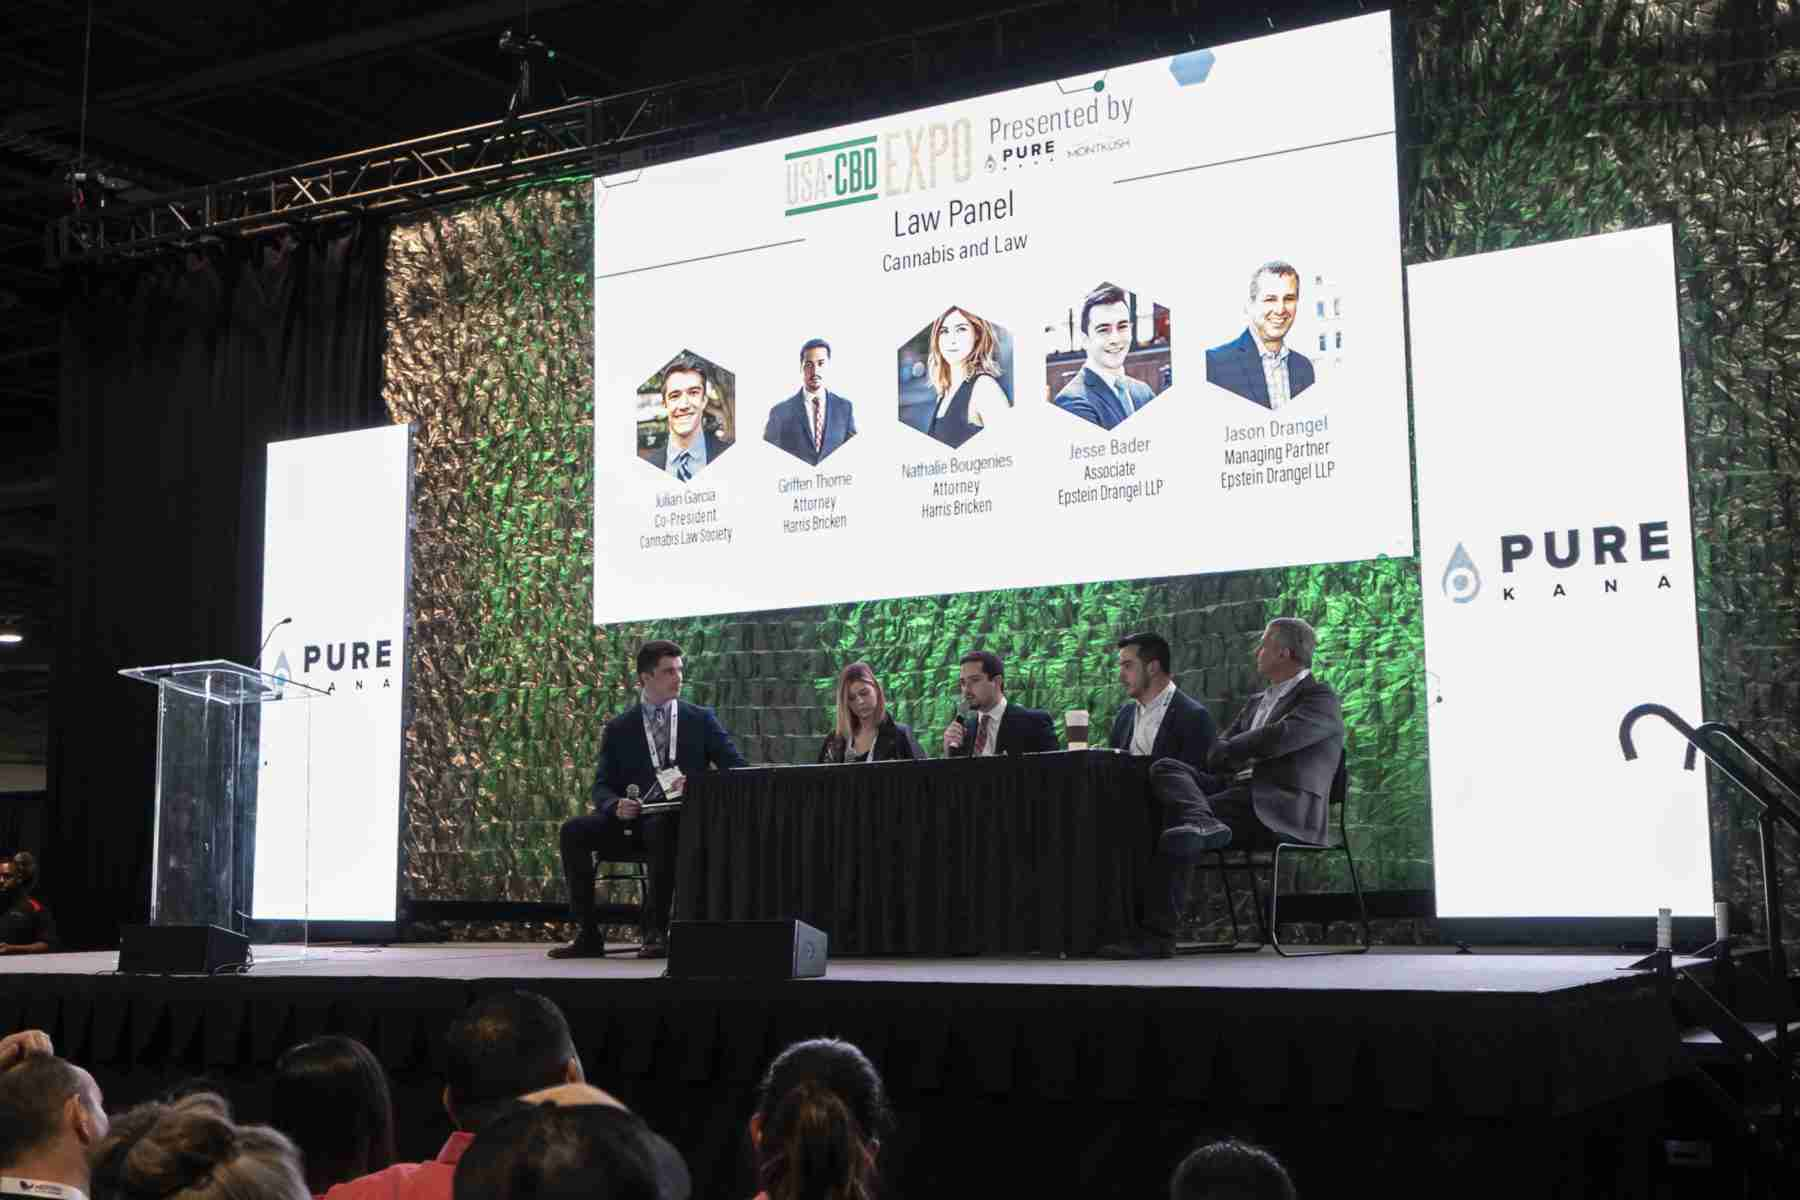 Law panel at the stage of USA CBD Expo in Las Vegas